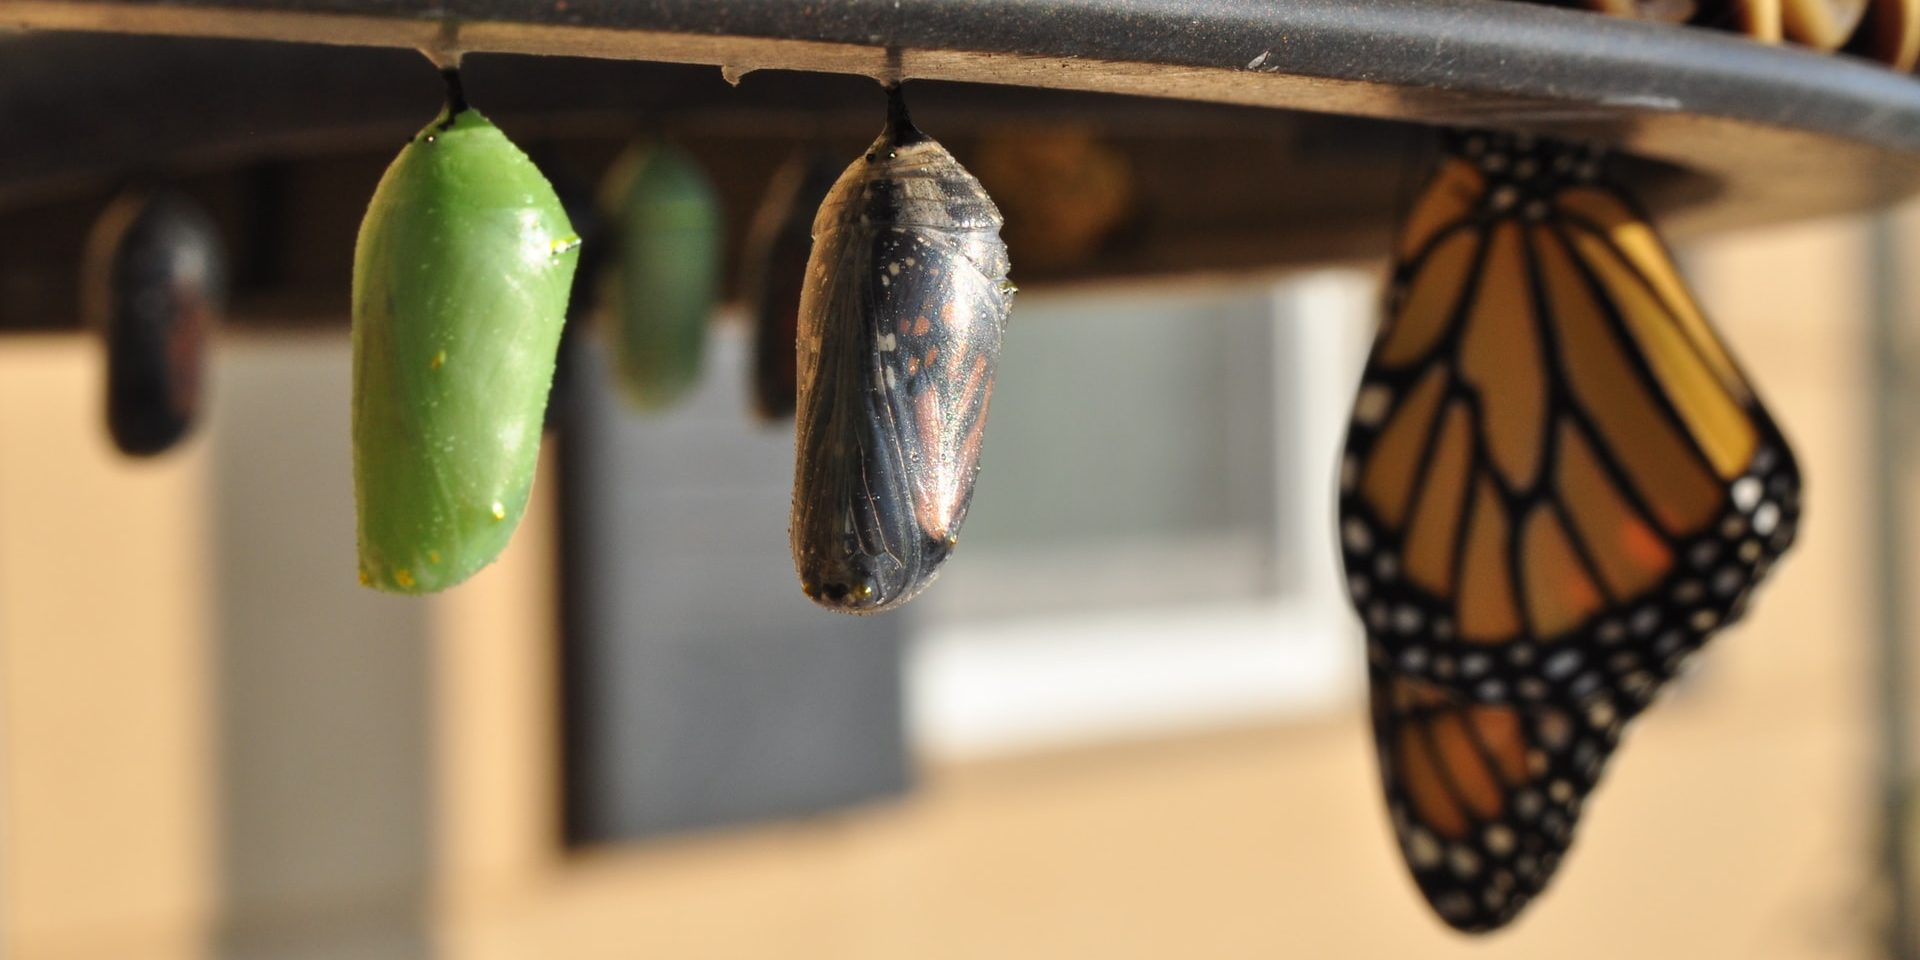 New green chrysalis coloration butterflies, one that's about ready to emerge, and a butterfly that's already come out